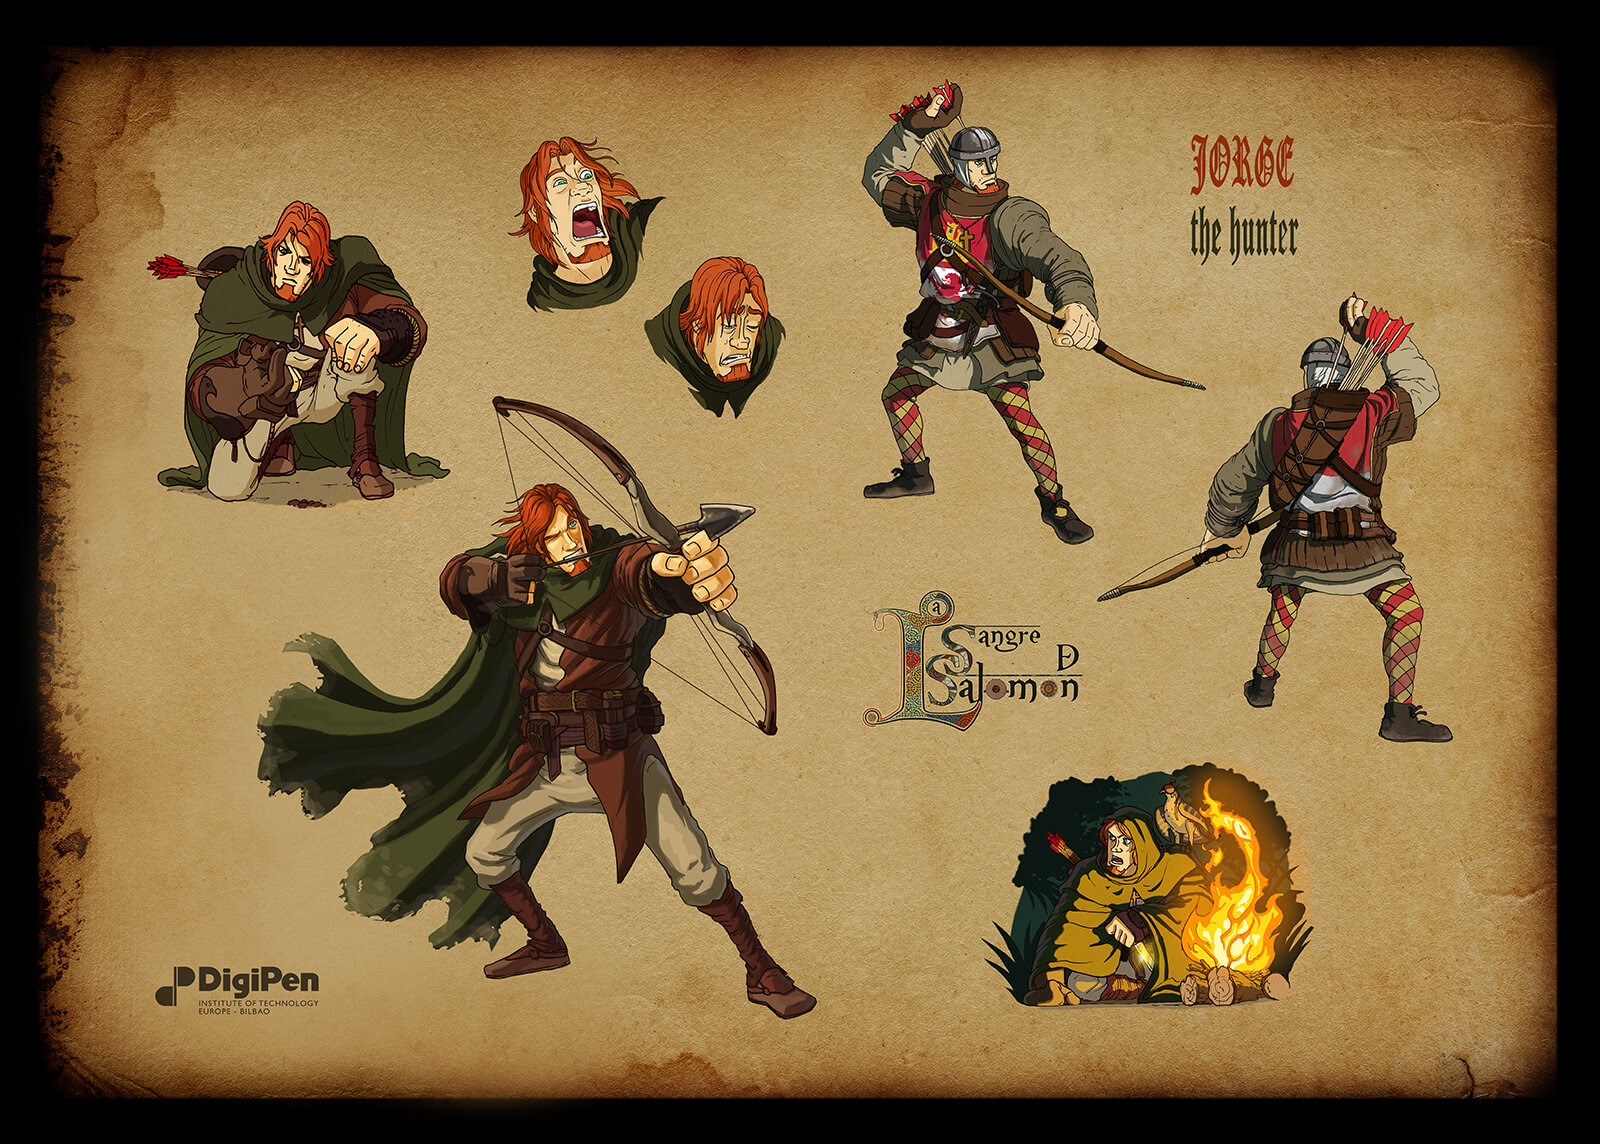 Concept paintings for a red-haired hunter in Sangre de Salomon in various poses, aiming a bow and arrow and crouching